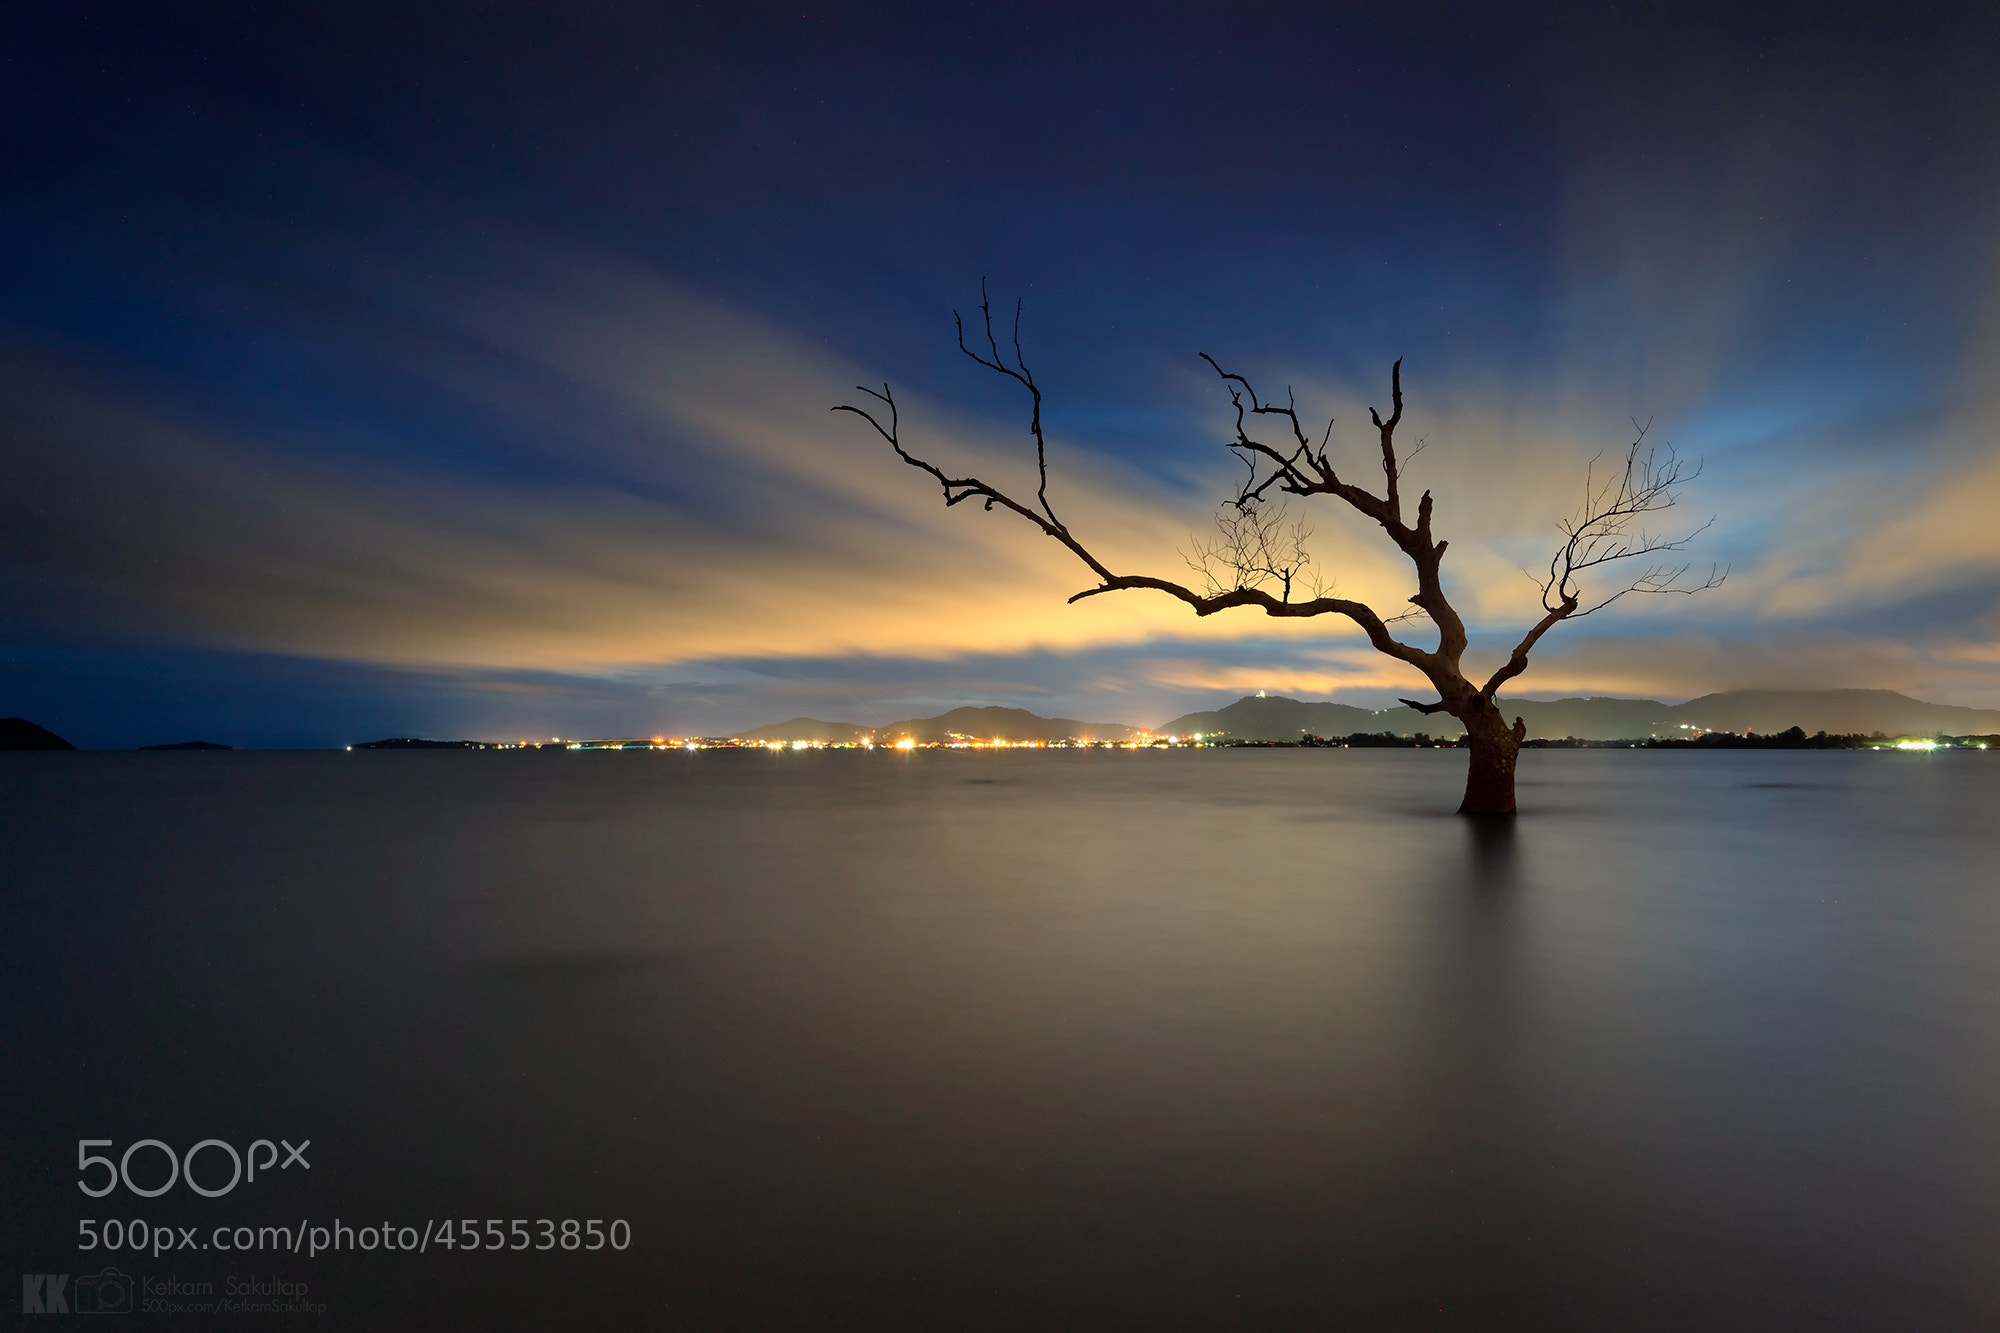 Photograph Hope by Ketkarn Sakultap on 500px